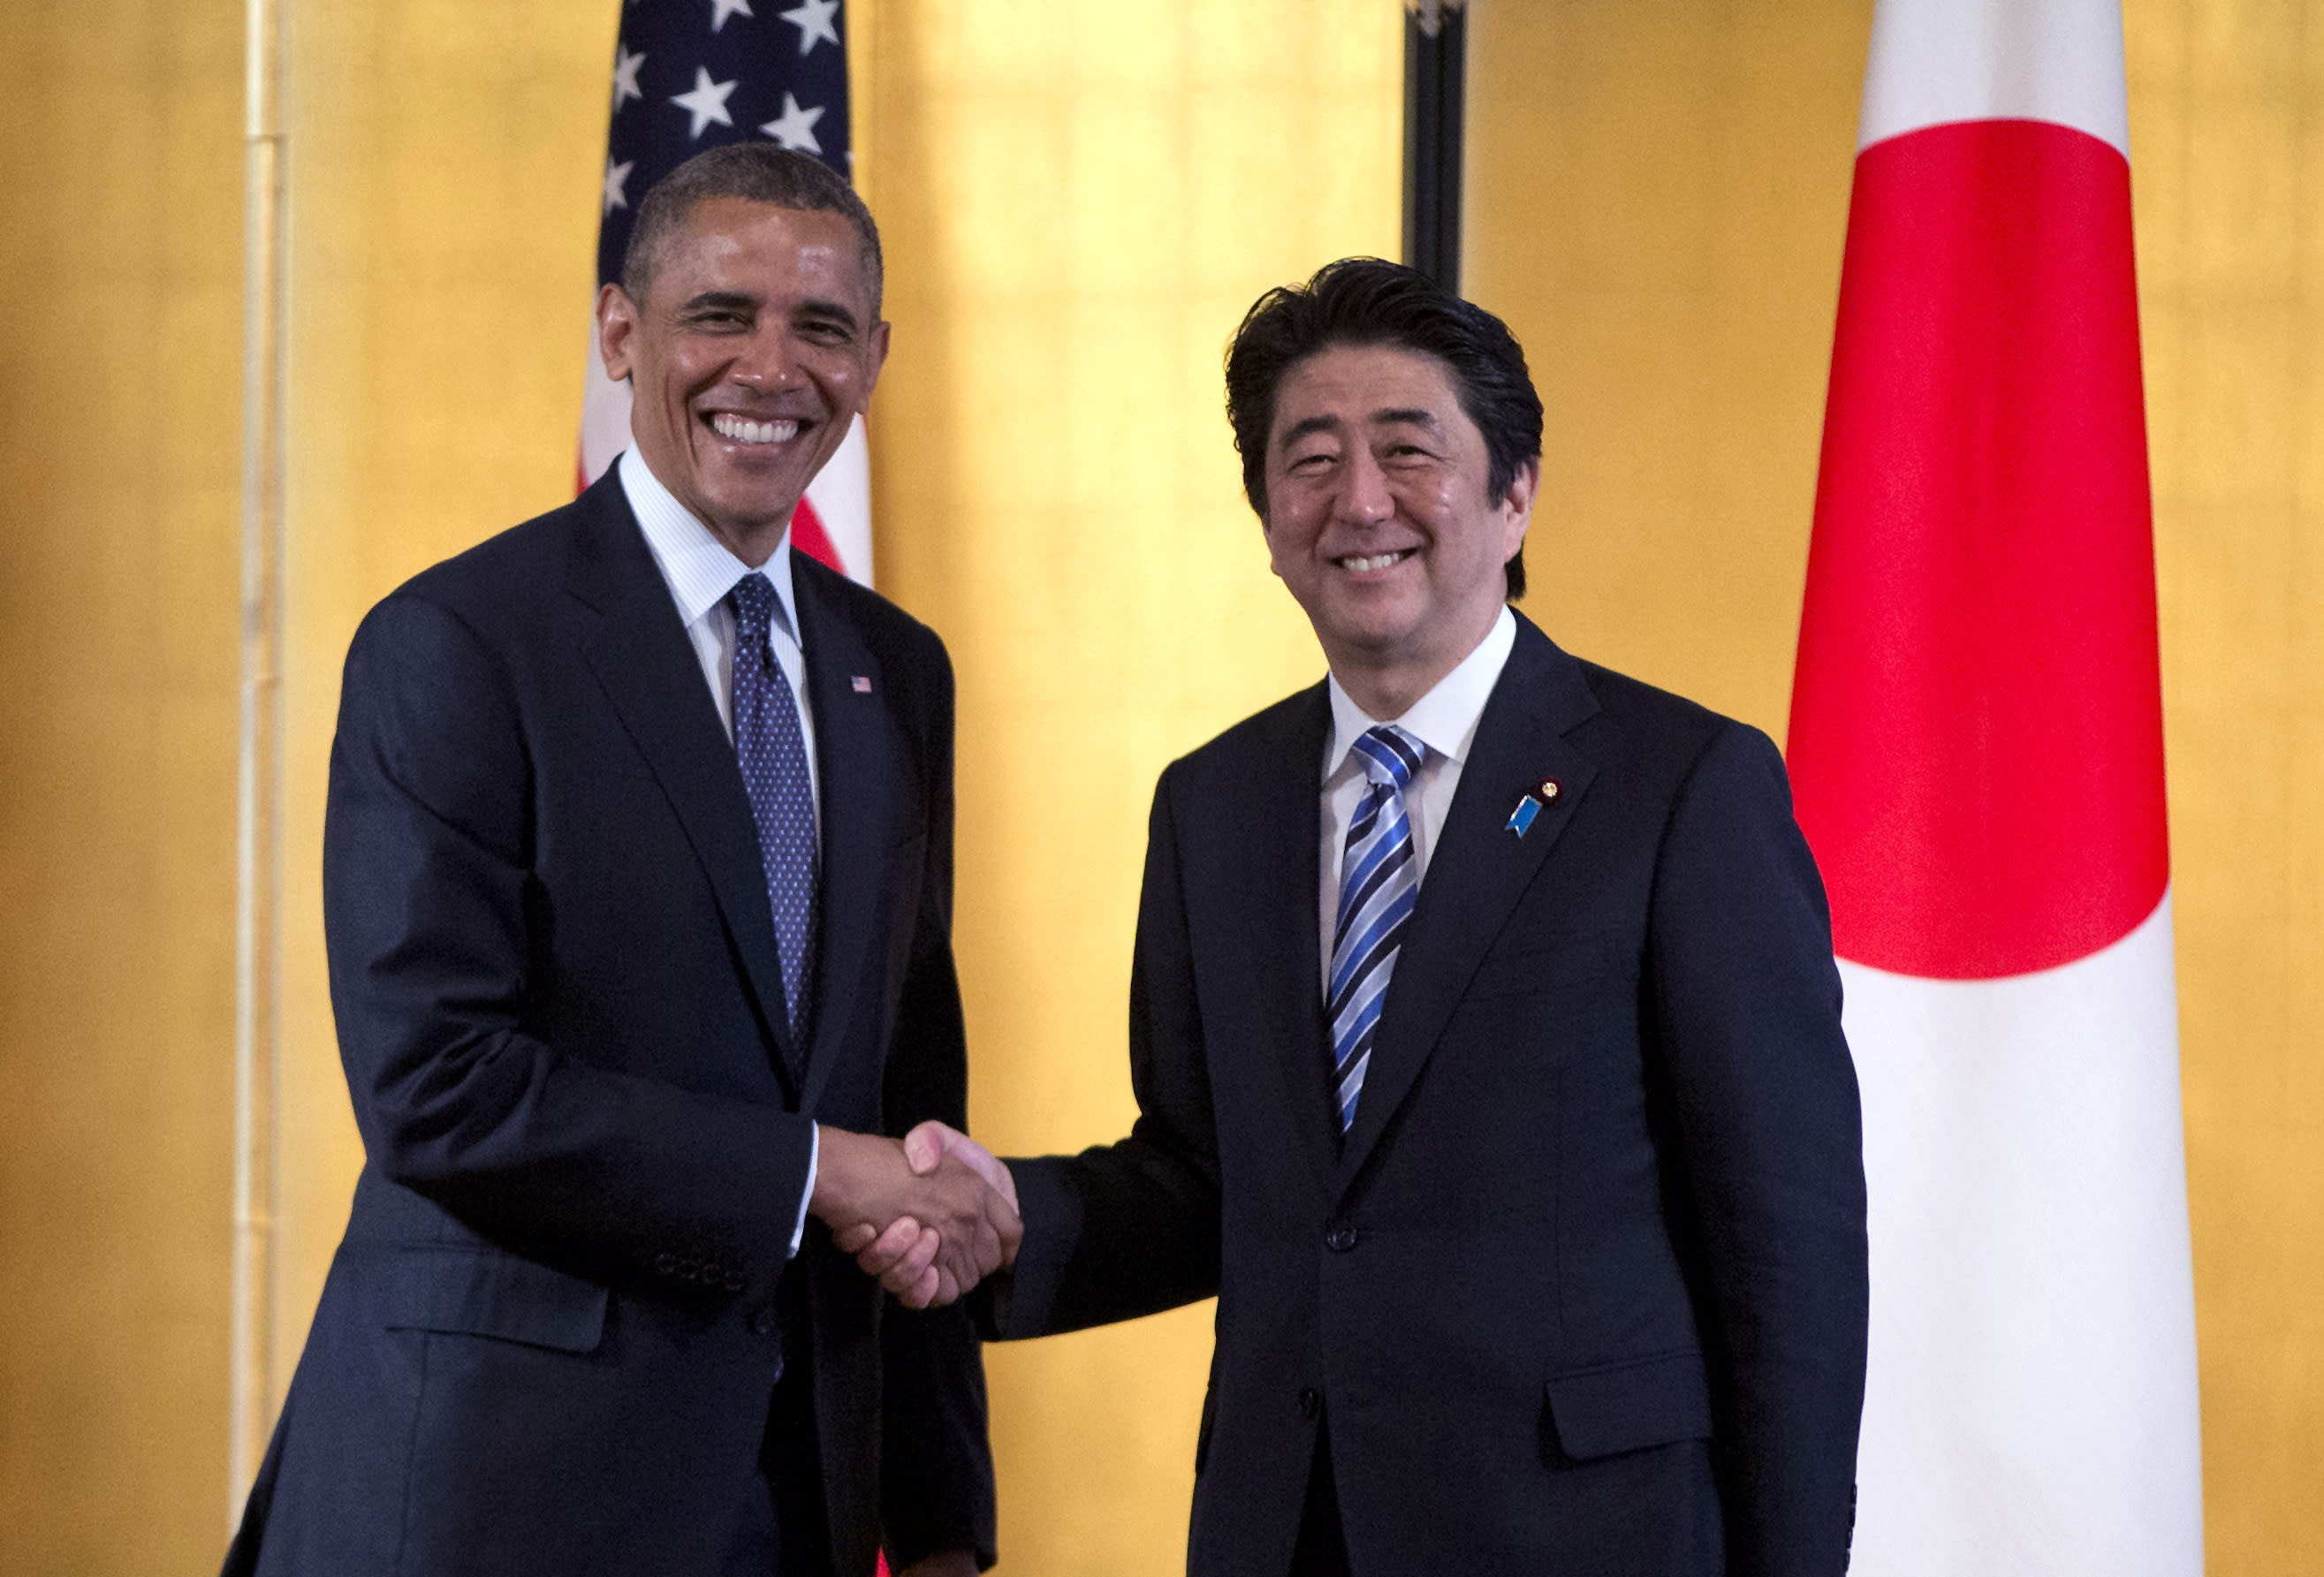 Japan's war history will shadows PM's US visit next week